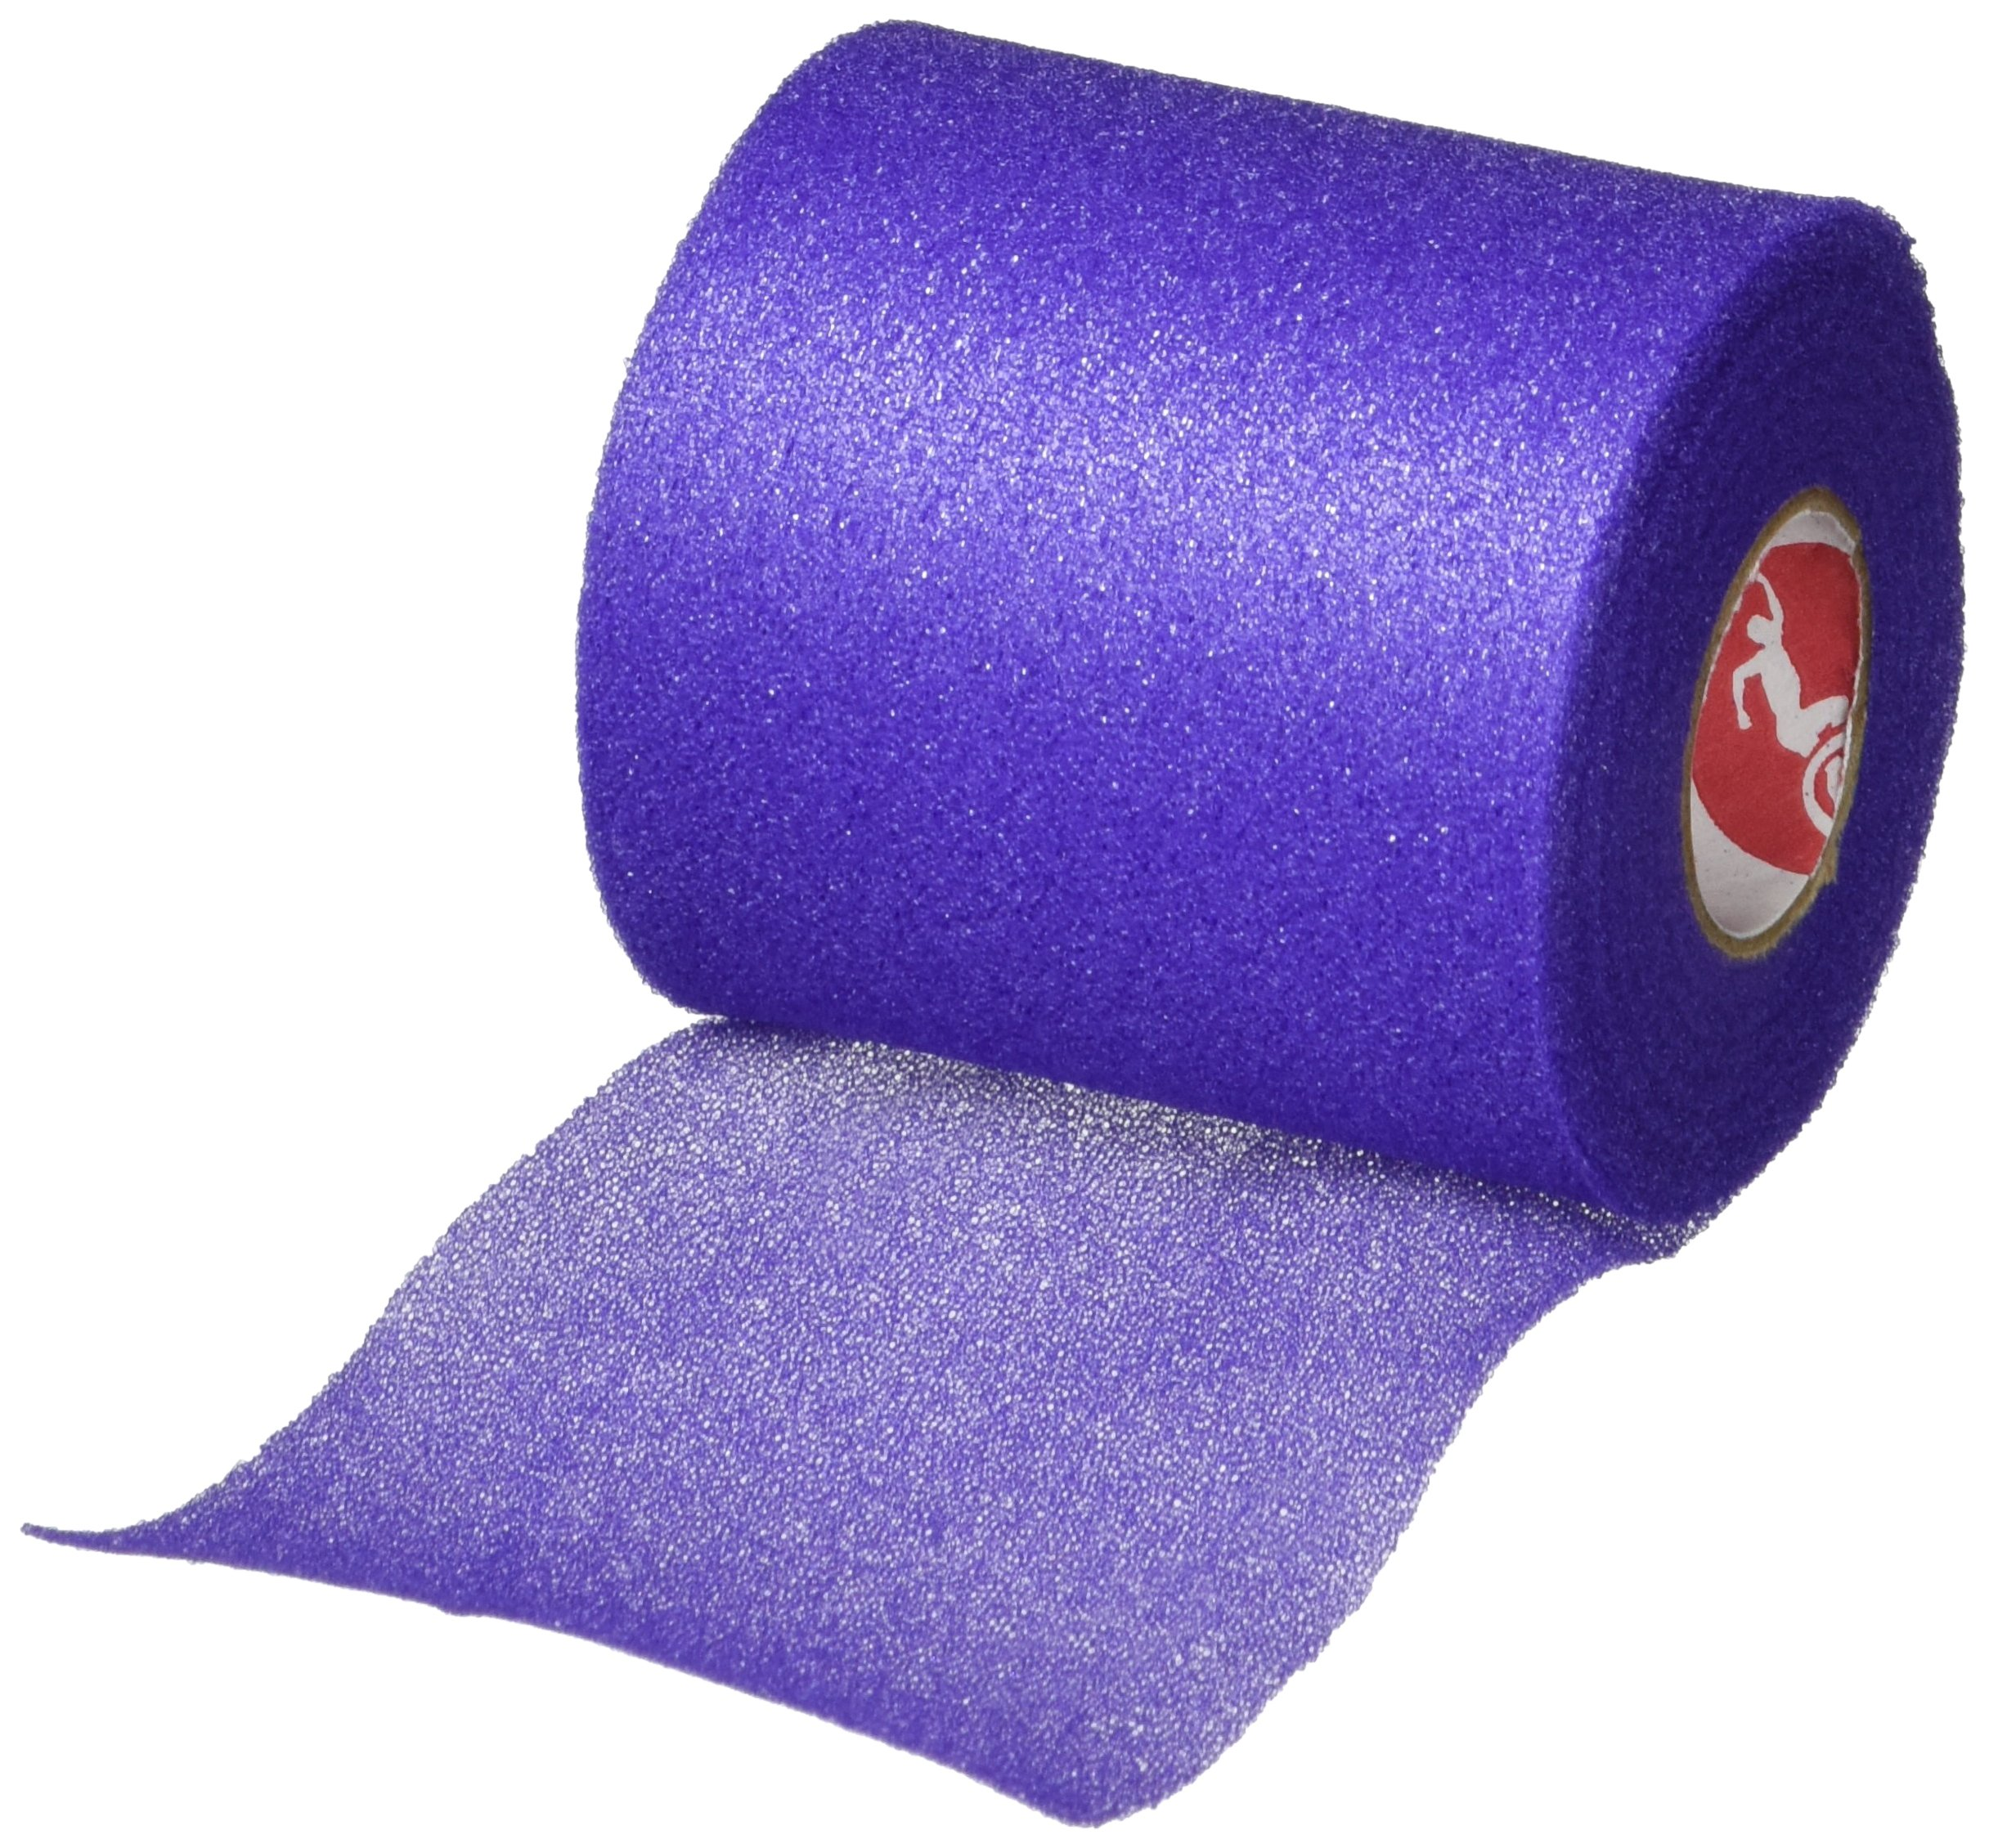 Cramer Tape Underwrap, Sports PreWrap for Athletic Ankle, Wrist, and Injury Taping Jobs, Hair Tie, Headband, Patella Support, Pre-Wrap Athletic Tape Supplies, 2.75'' X 21'' Yard Single Roll of Pre Wrap